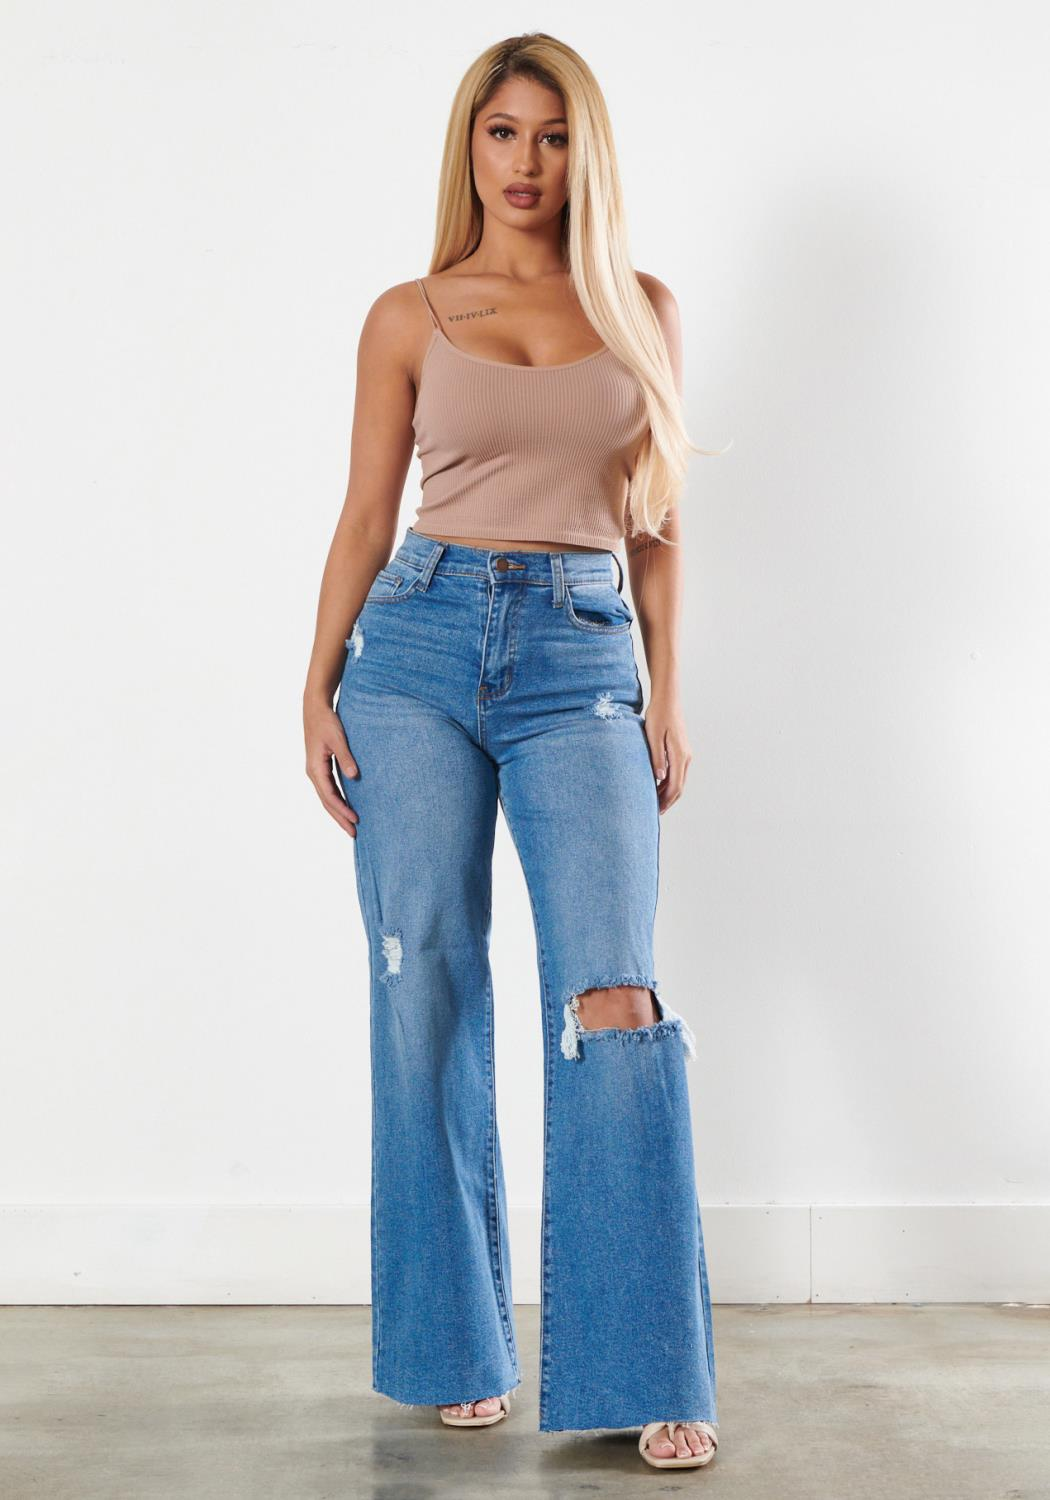 90s Baby Wide Jeans